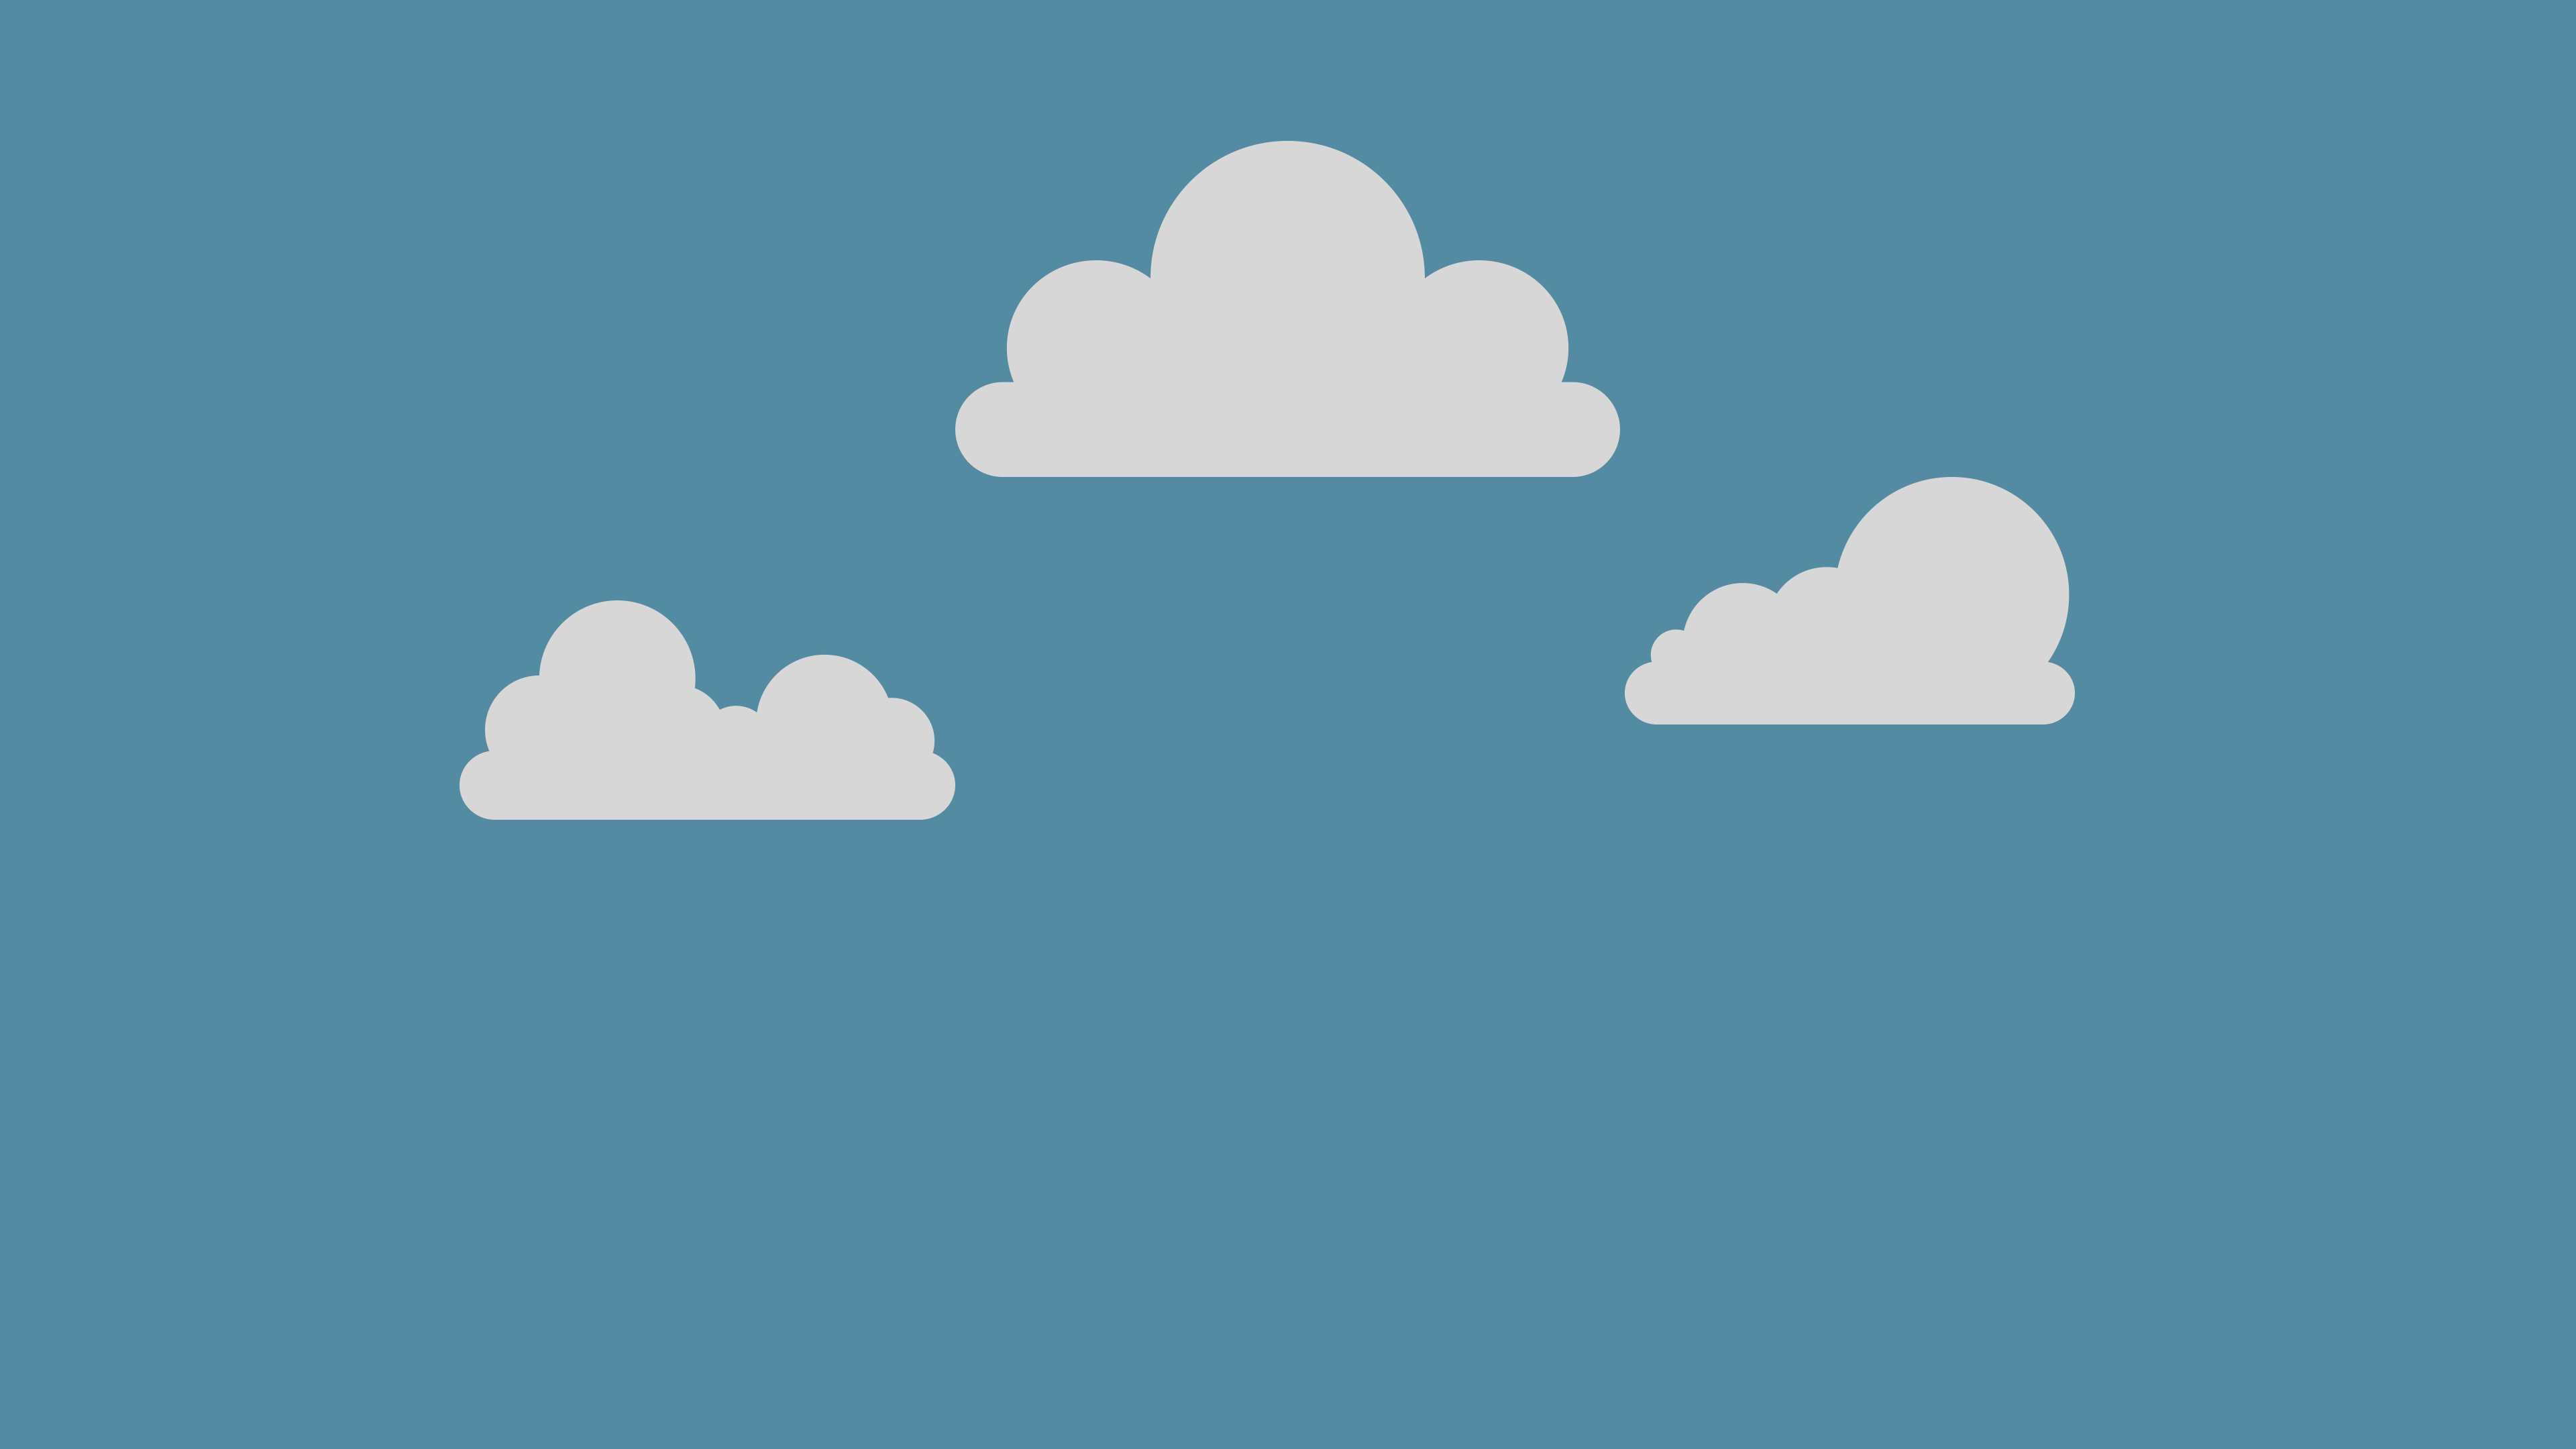 clouds hd wallpaper minimalist - photo #28